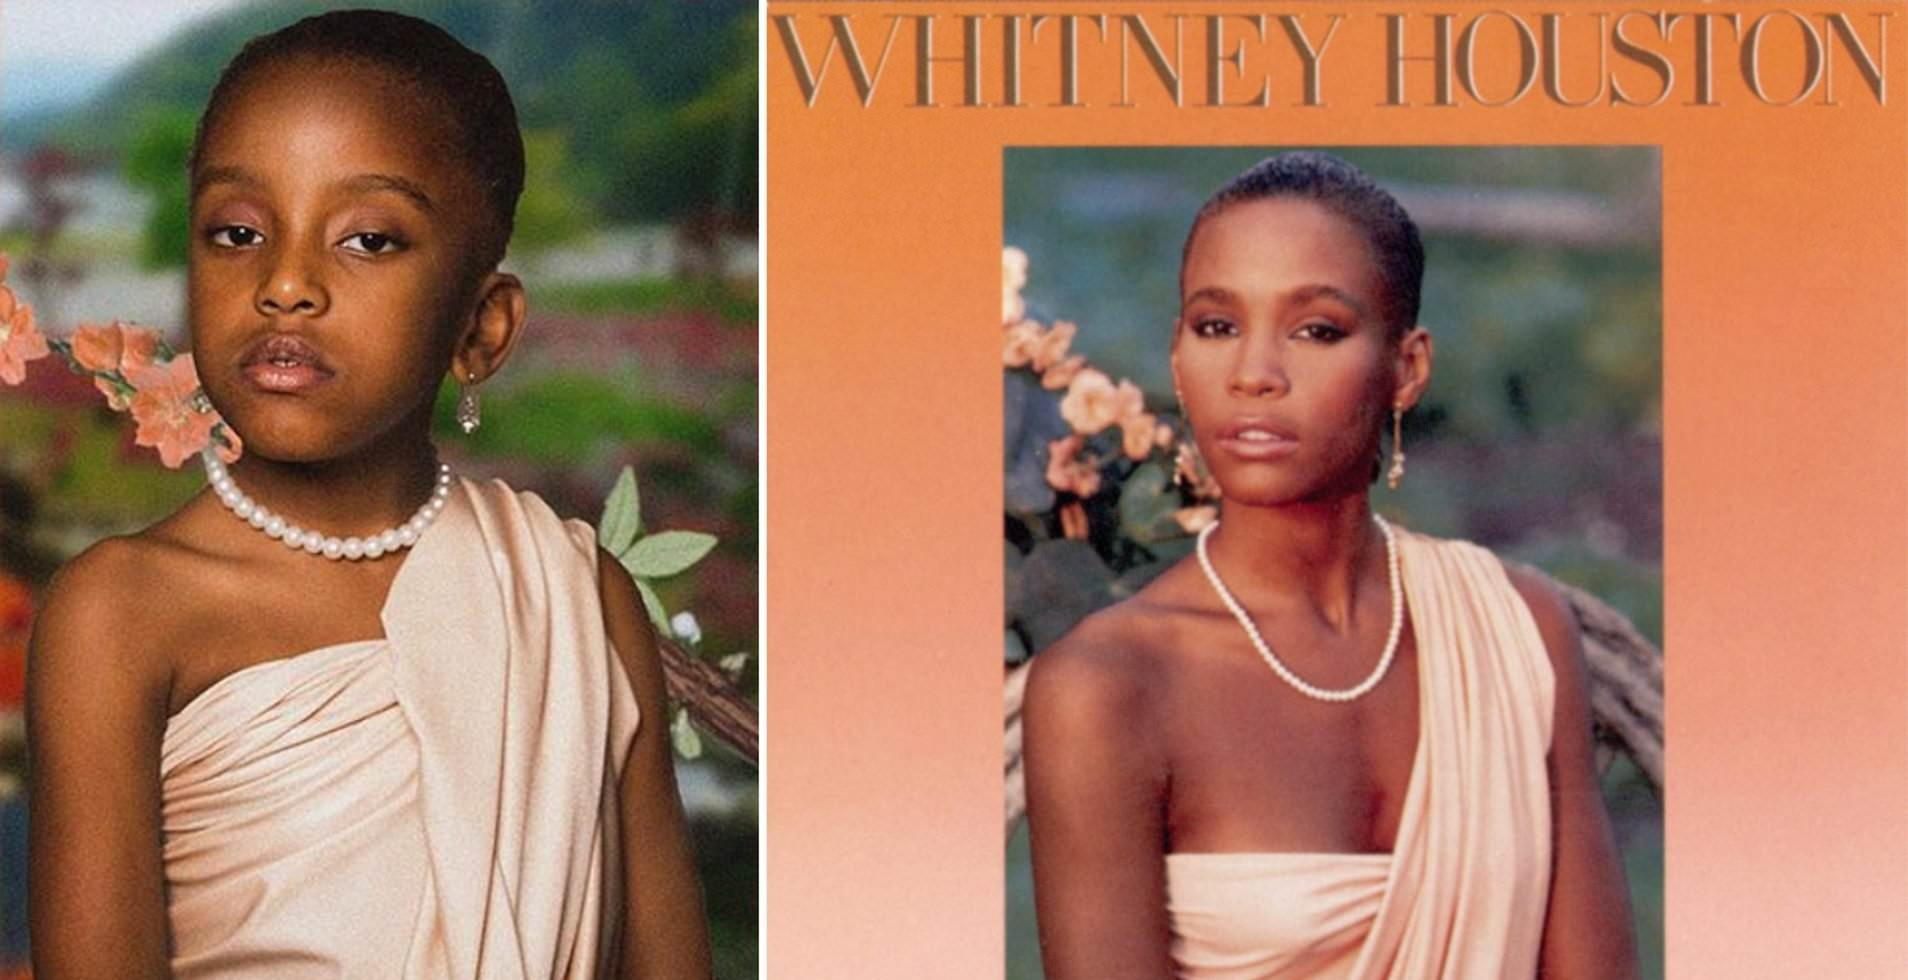 6 Year Old Recreated Iconic Female Album Covers For Black History Month